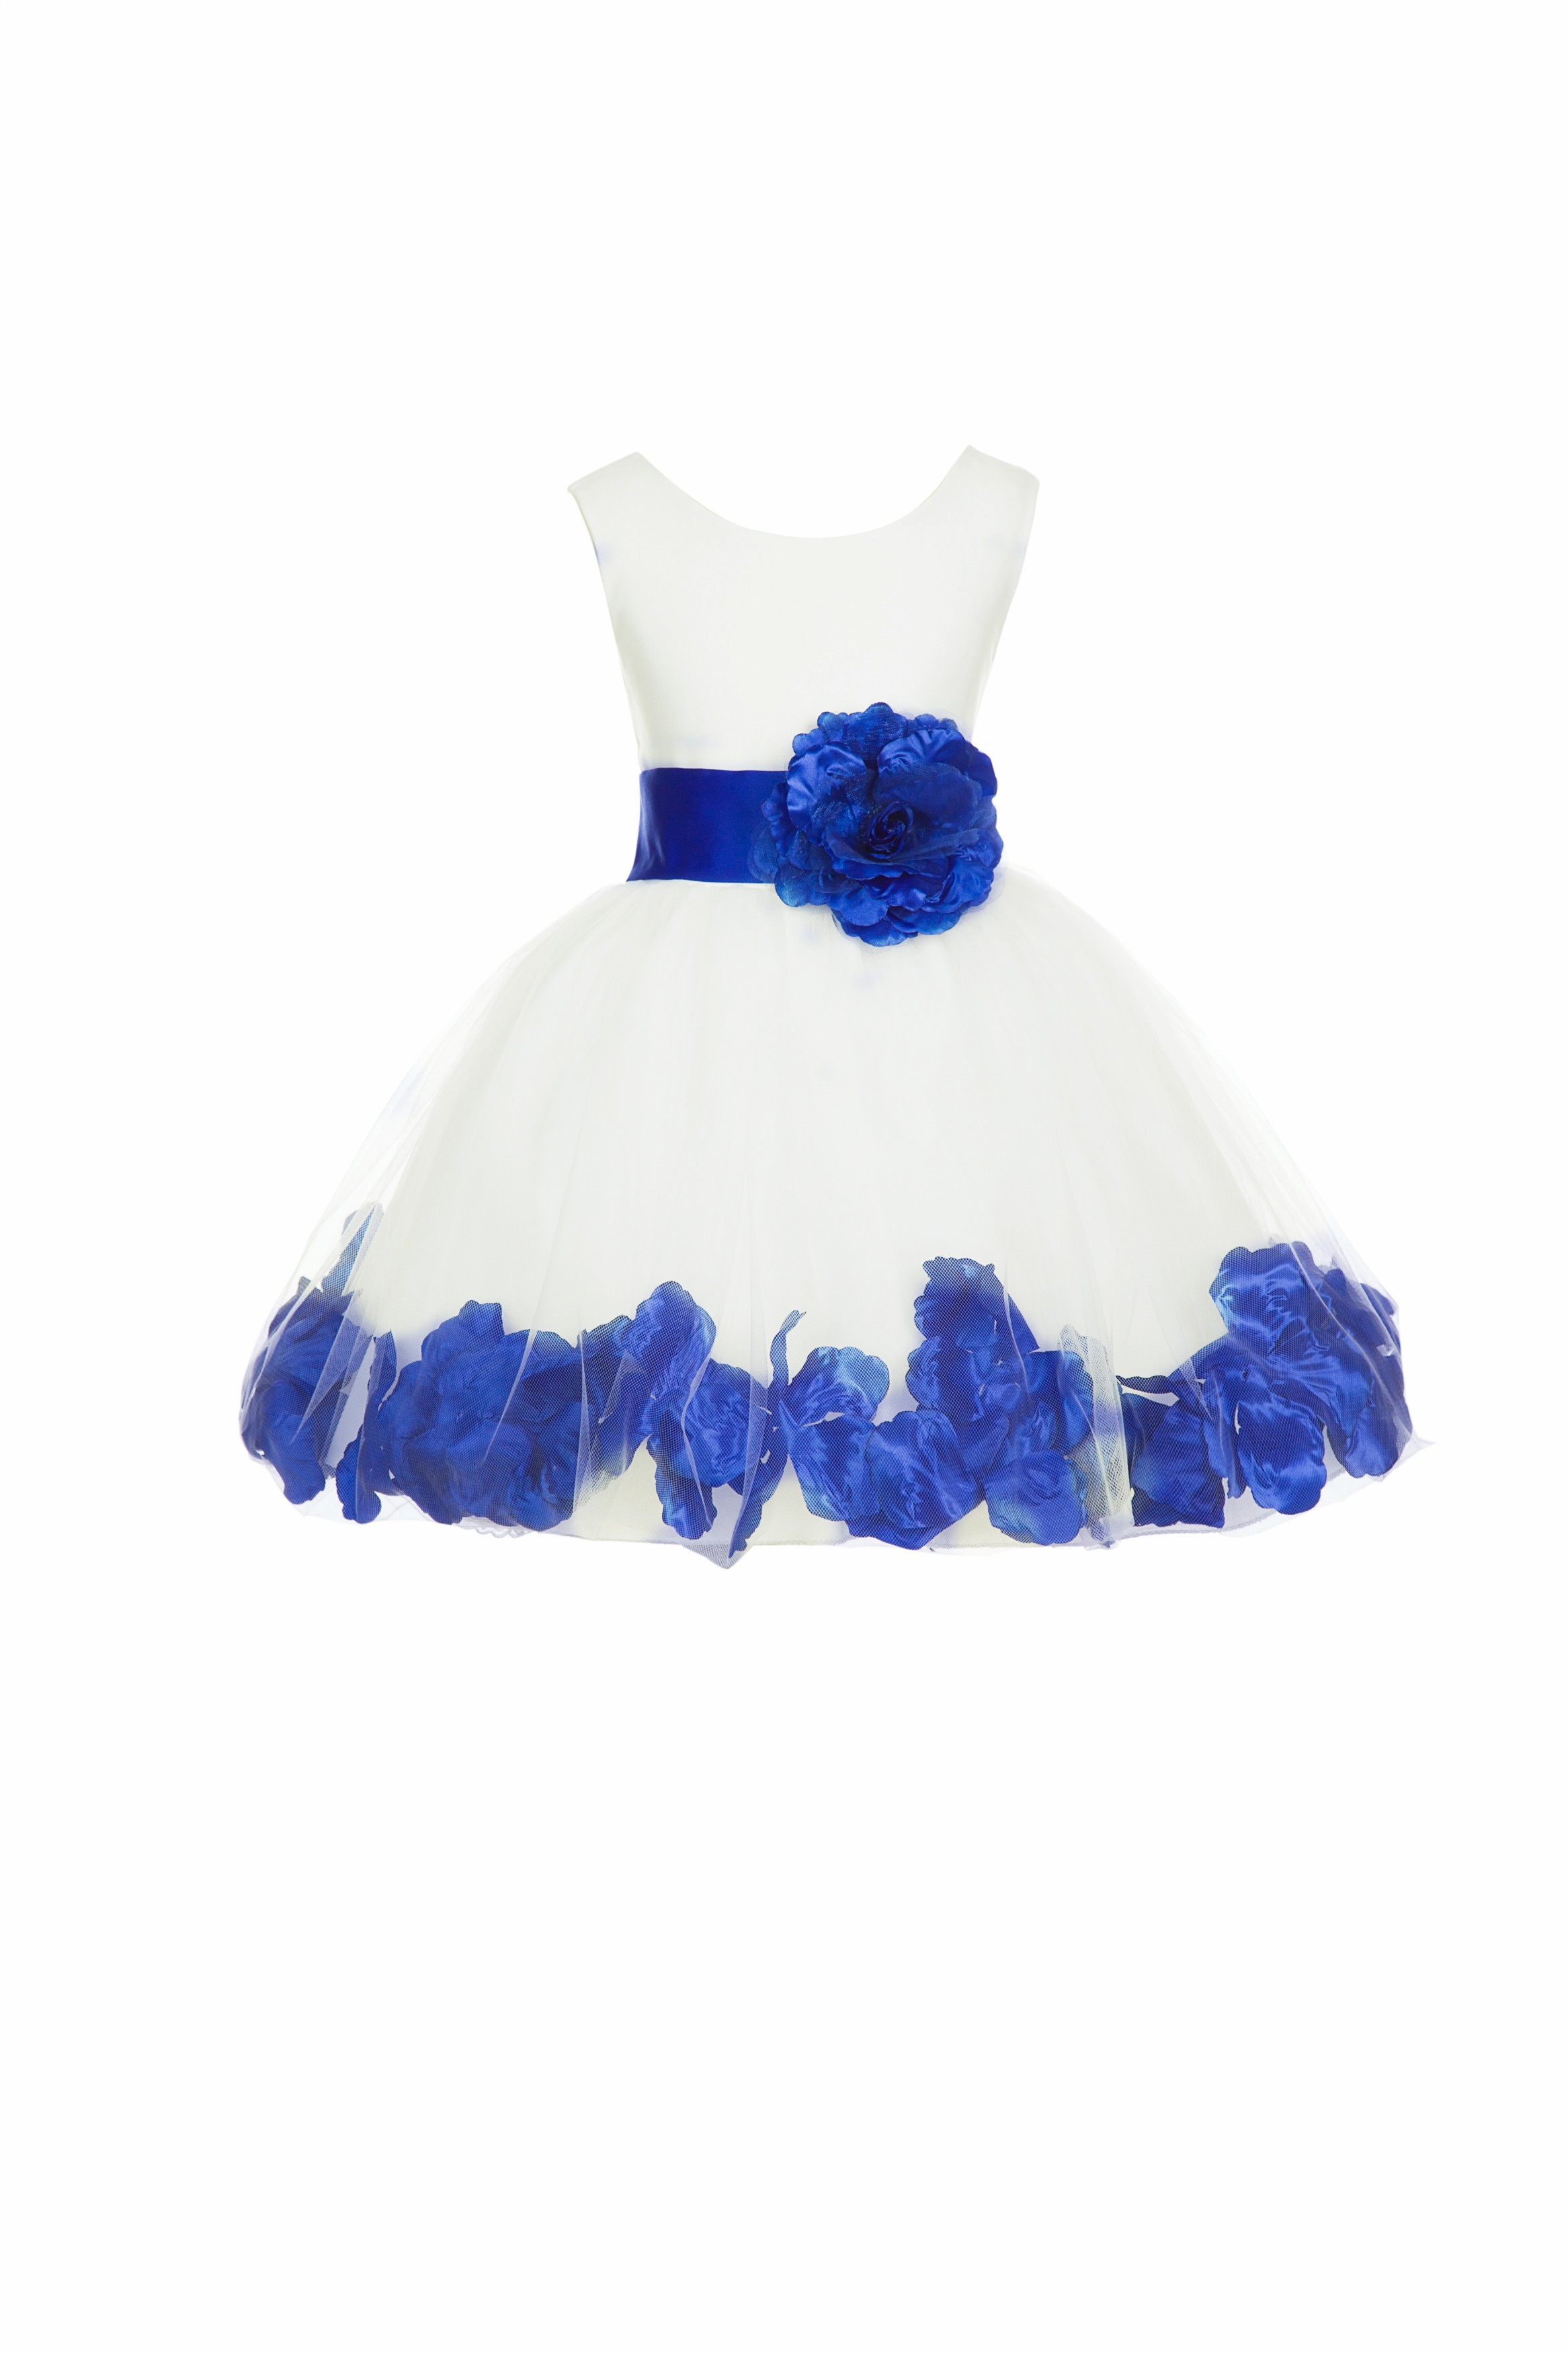 8019af075fc Ivory Horizon Rose Petals Tulle Flower Girl Dress Pageant 305T ...